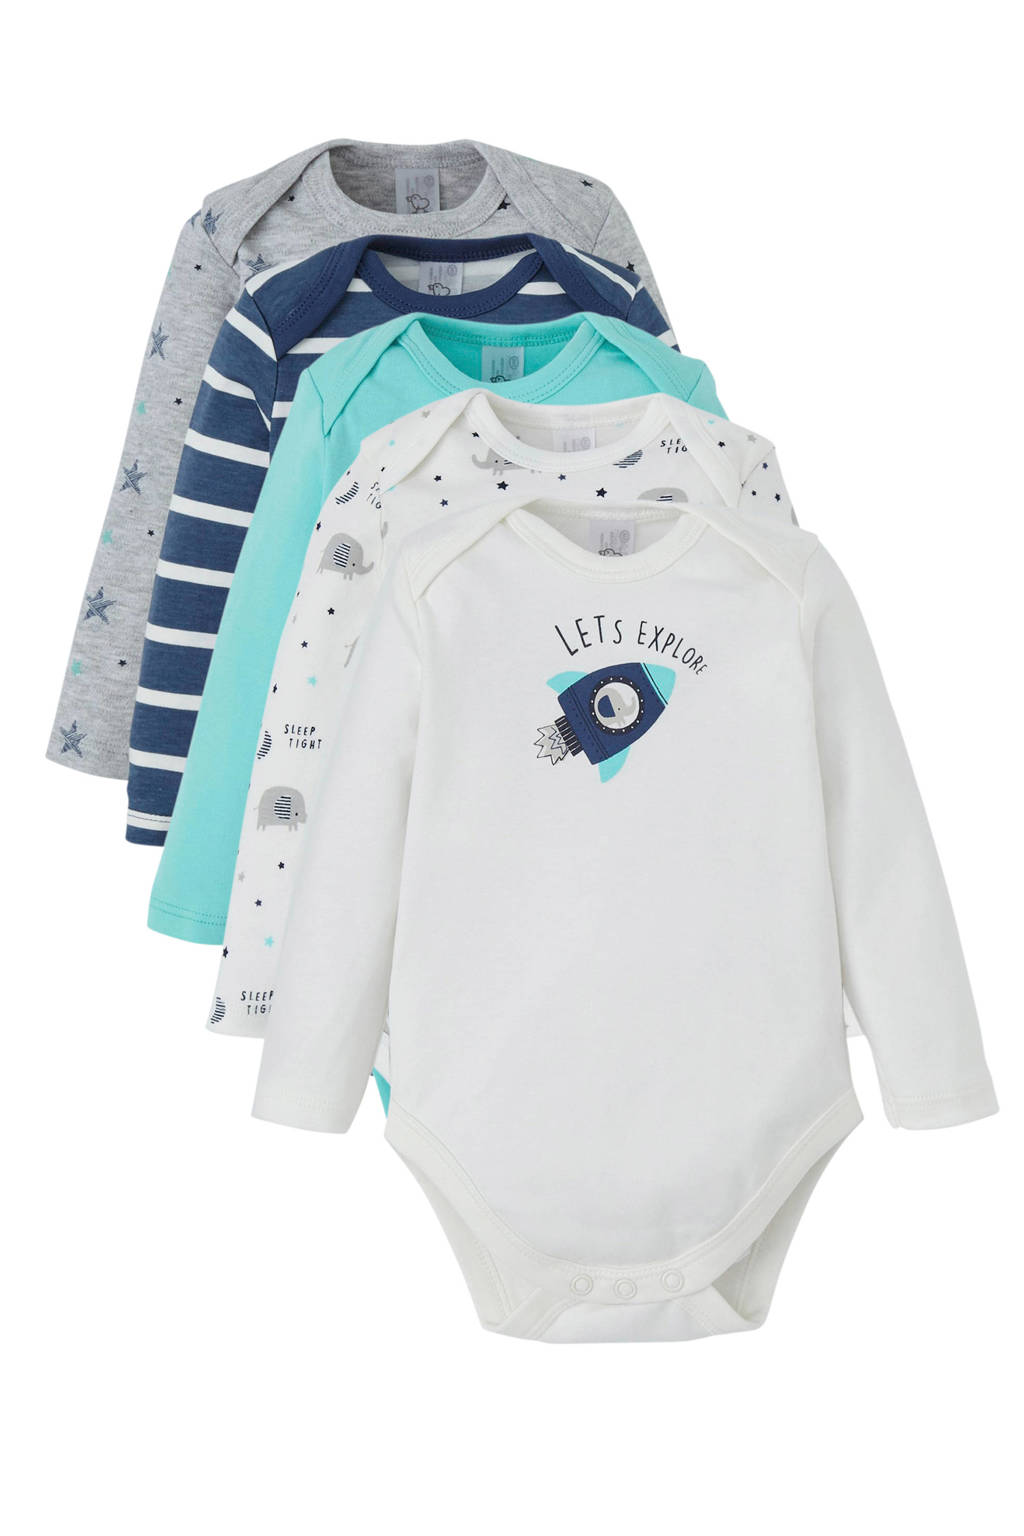 C&A Baby Club romper - set van 5, wit/blauw/mint